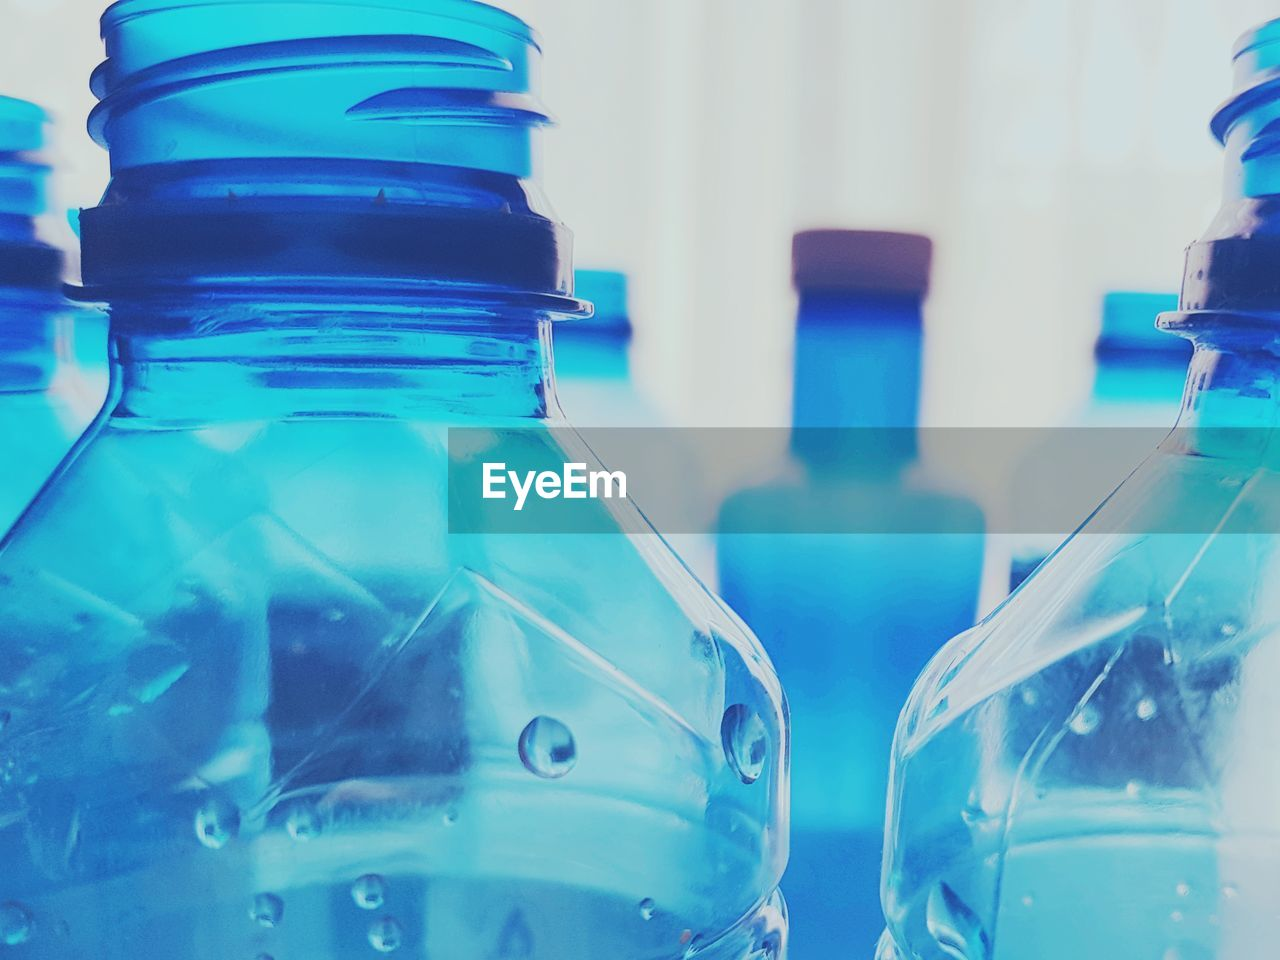 container, transparent, glass - material, bottle, indoors, close-up, focus on foreground, blue, no people, laboratory, science, still life, selective focus, plastic, research, food and drink, water bottle, drink, in a row, turquoise colored